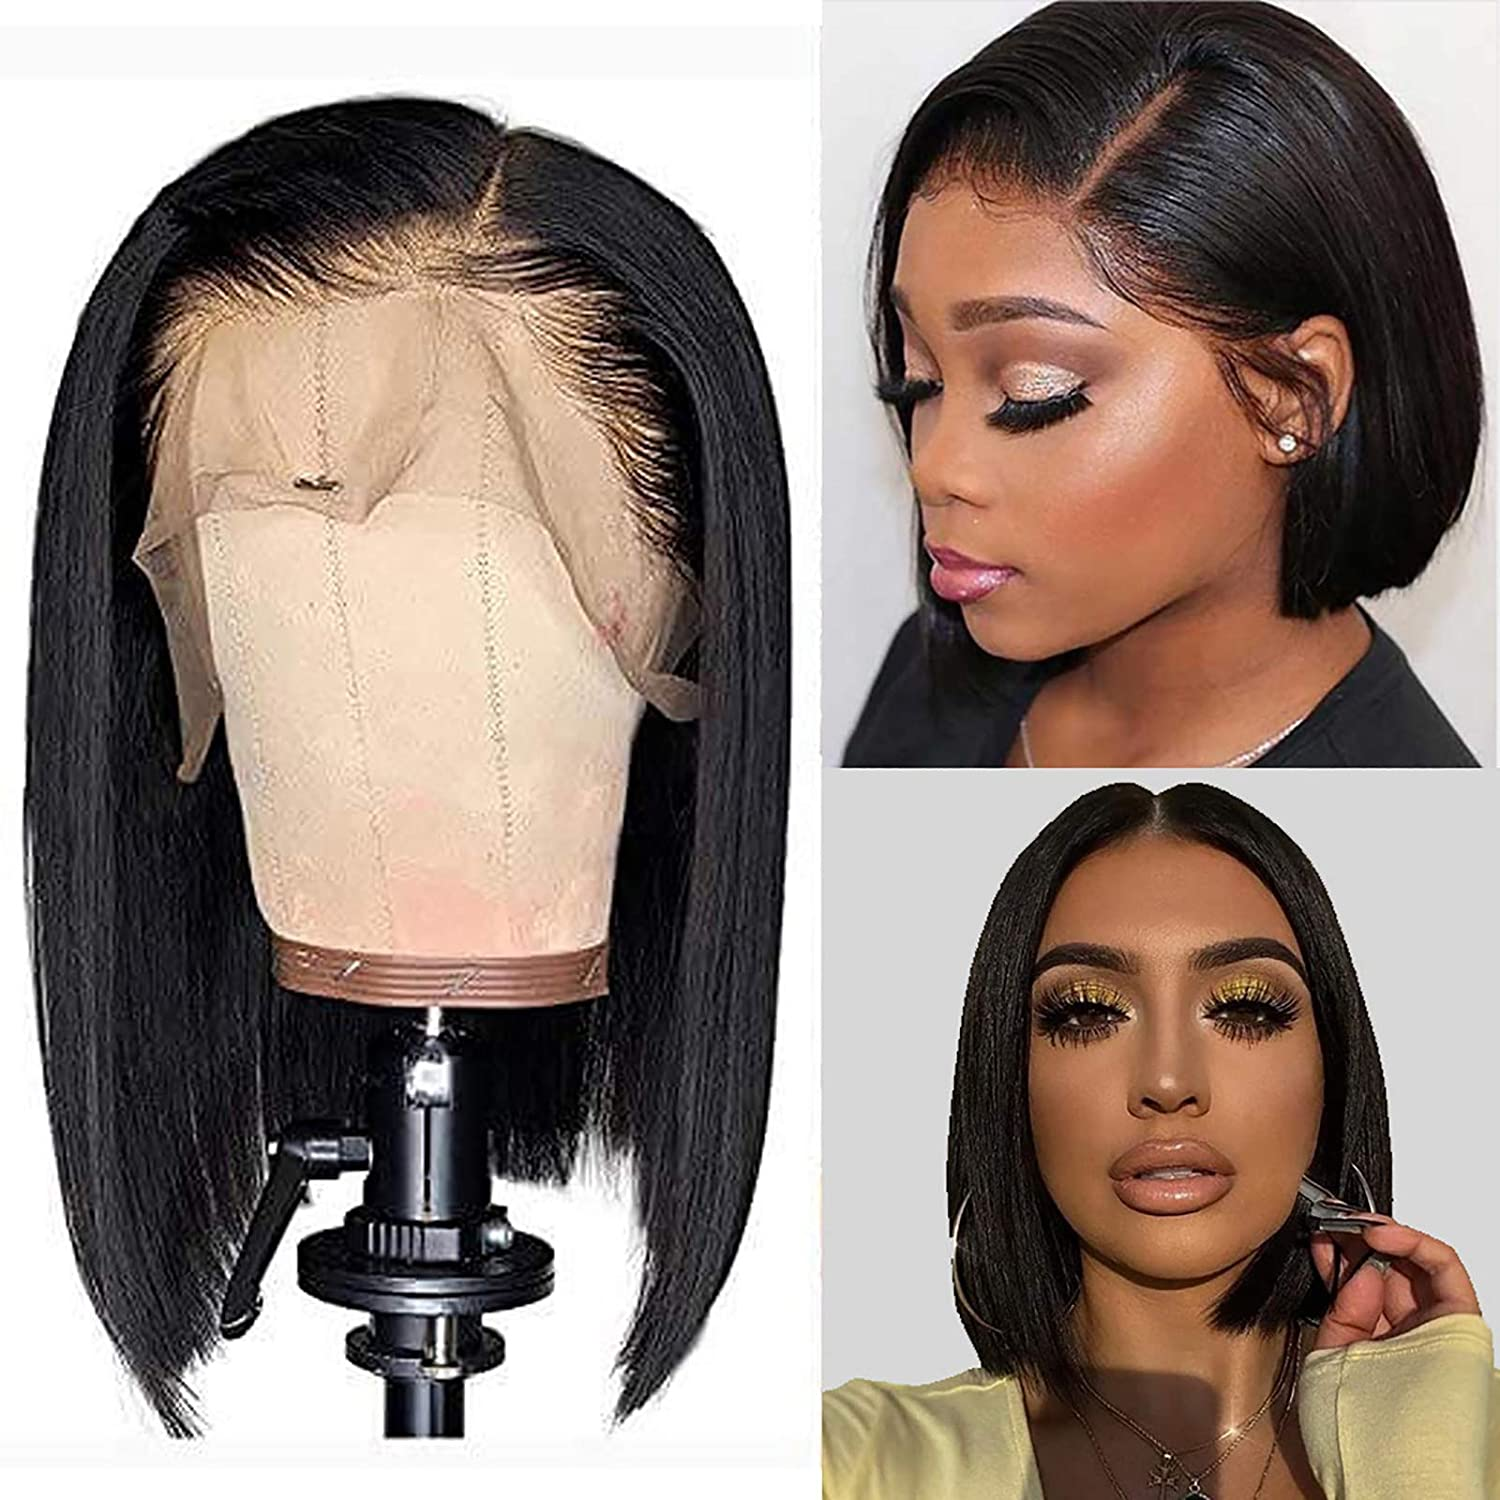 Lace Front Wigs Human Hair 13x4 Bob Wigs Straight Lace Front Wigs Human Hair Short Bob Wigs For Black Women Pre Plucked